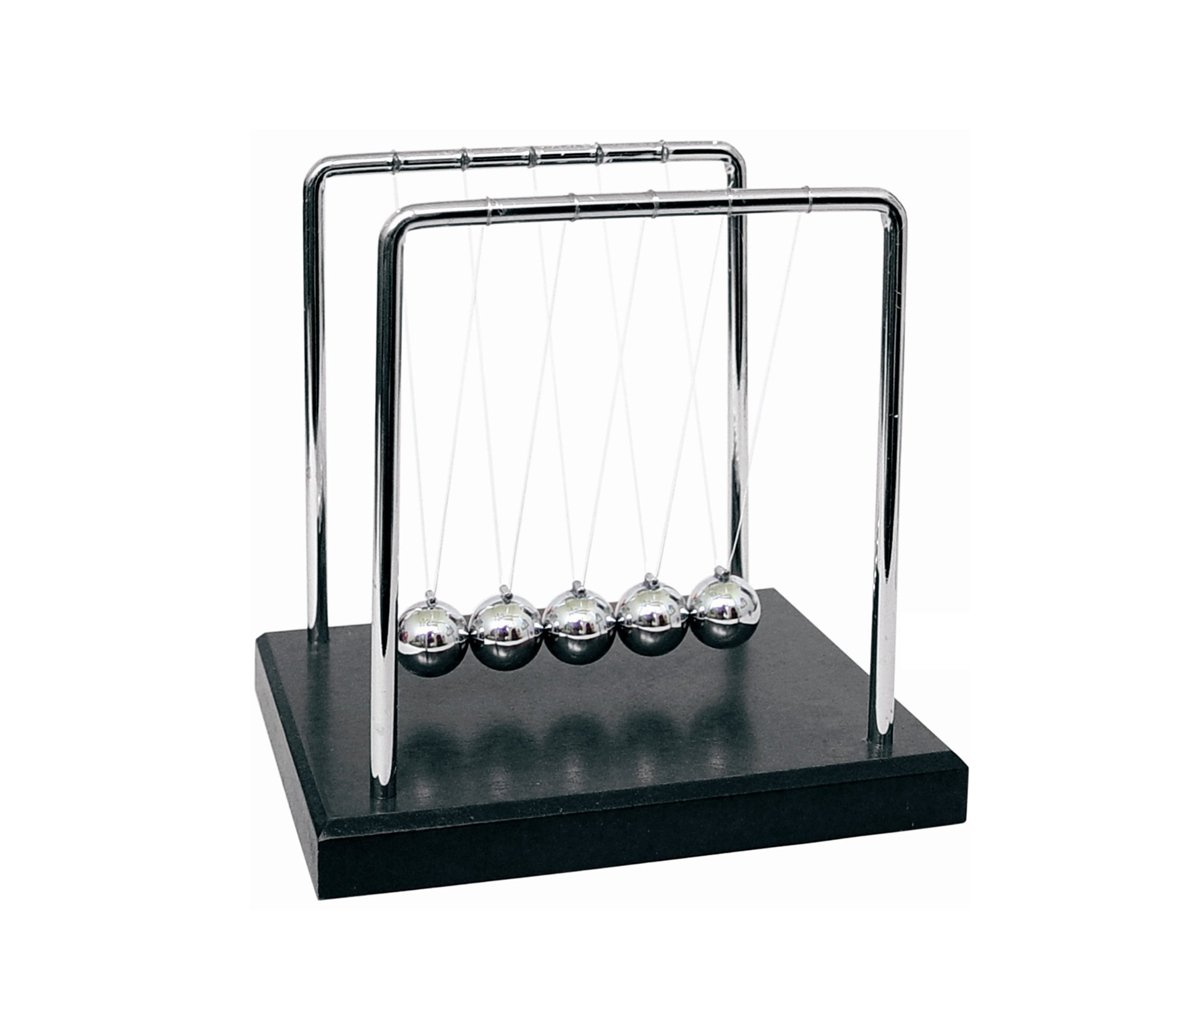 AMPERSAND SHOPS Newton's Cradle Desk Display and Novelty Toy